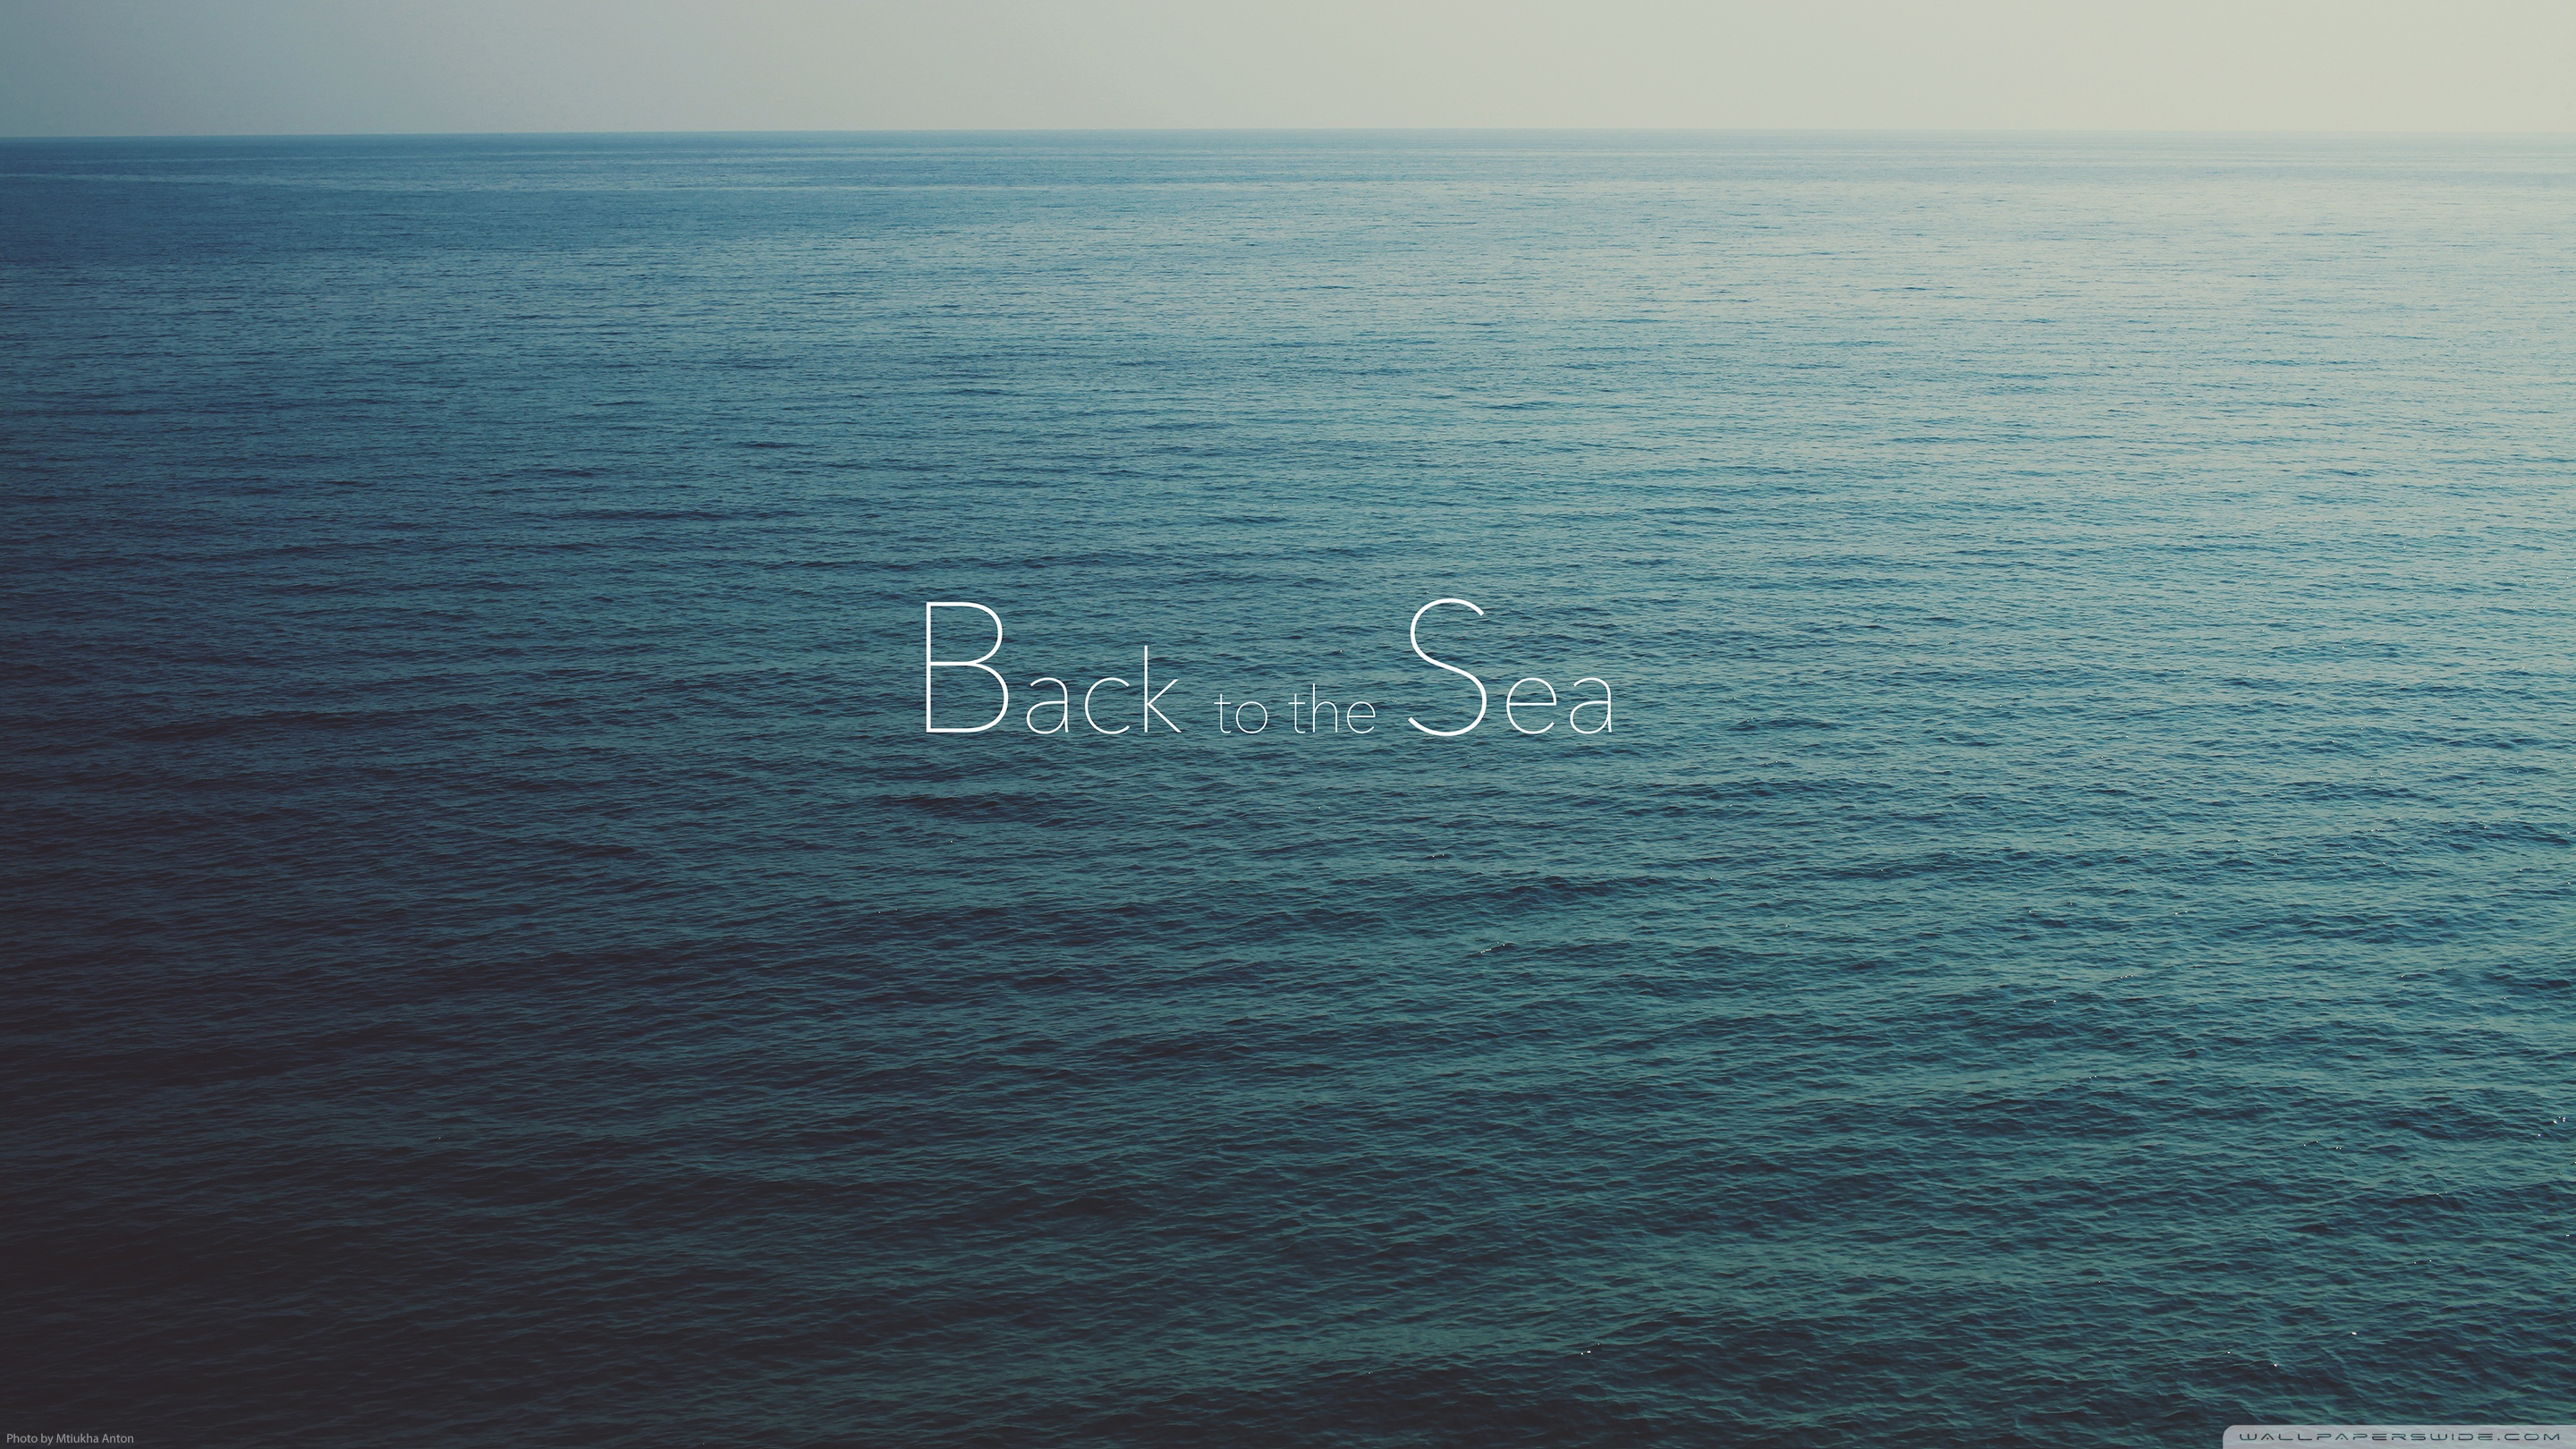 Back To The Sea 4K HD Desktop Wallpaper For Ultra TV O Dual